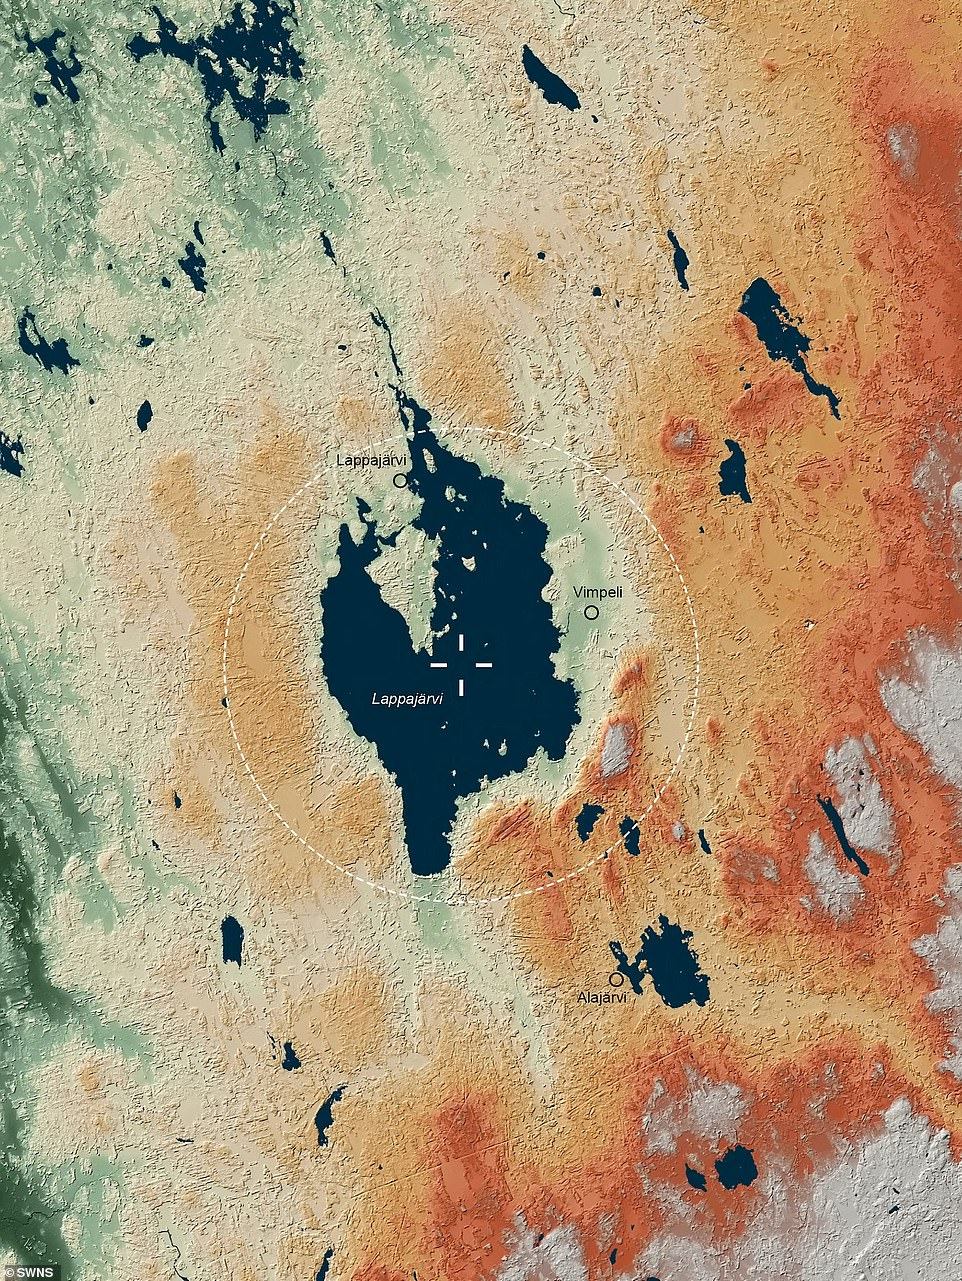 Famous craters such as the Vredefort Crater and the Chicxulub Crater in the Yucatan Peninsula, Mexico, also featured in the Atlas, which put an end to dinosaurs. Pictured: Lappajarvi Crater in Finland